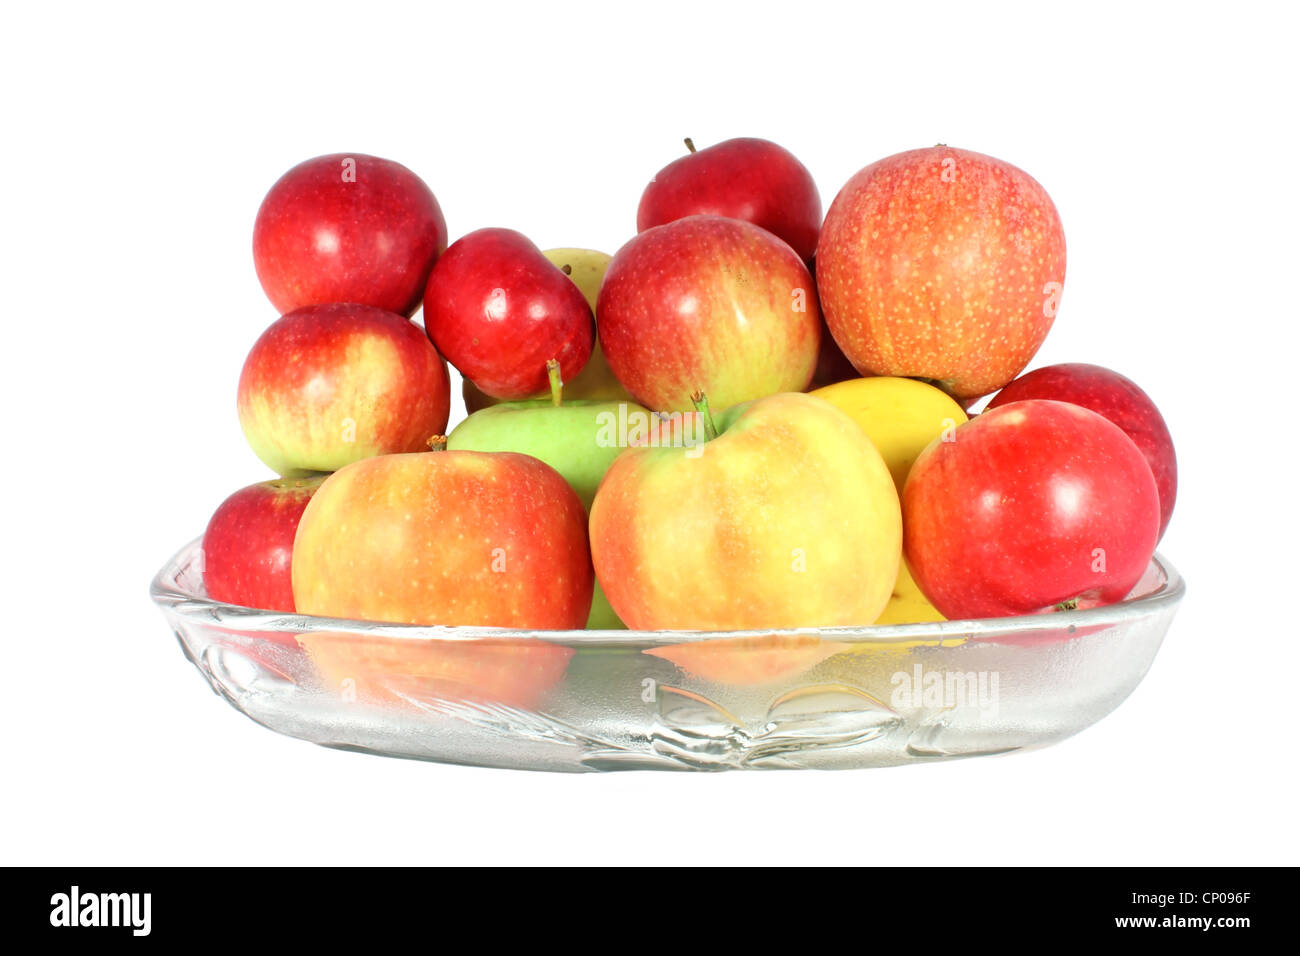 Diverse kind of apples in a glass bowl isolated on white - Stock Image